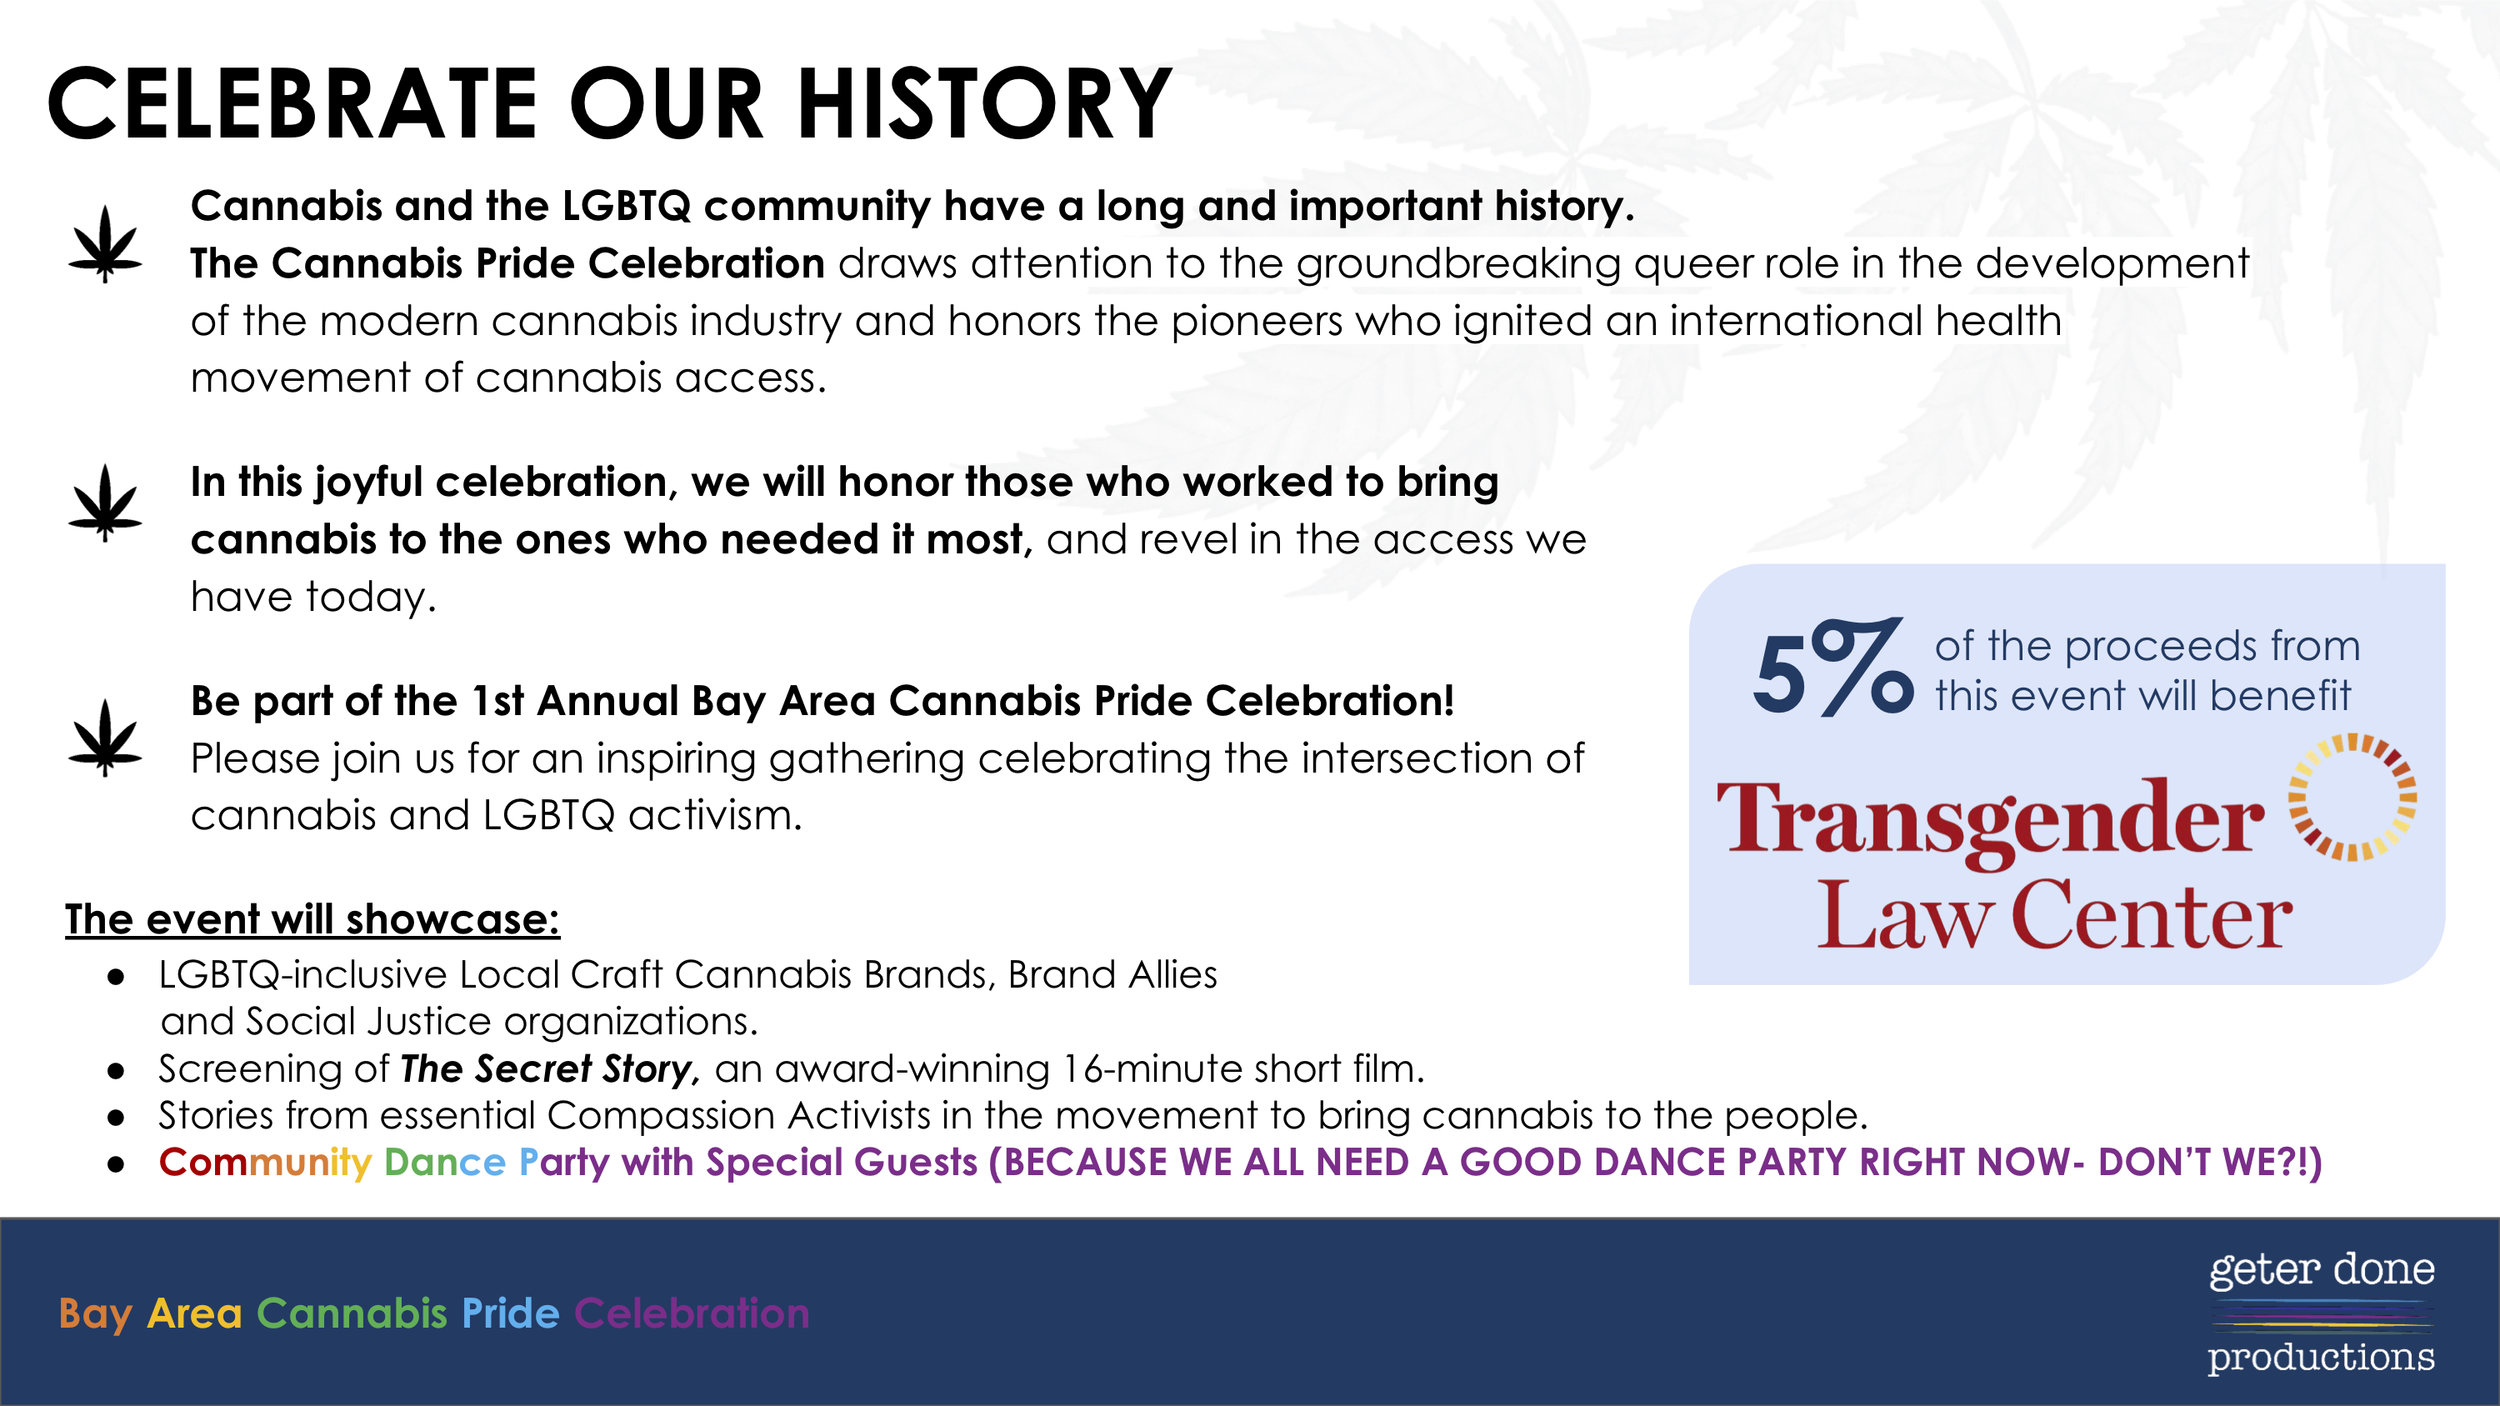 BACPC-Celebrate Our History.jpg